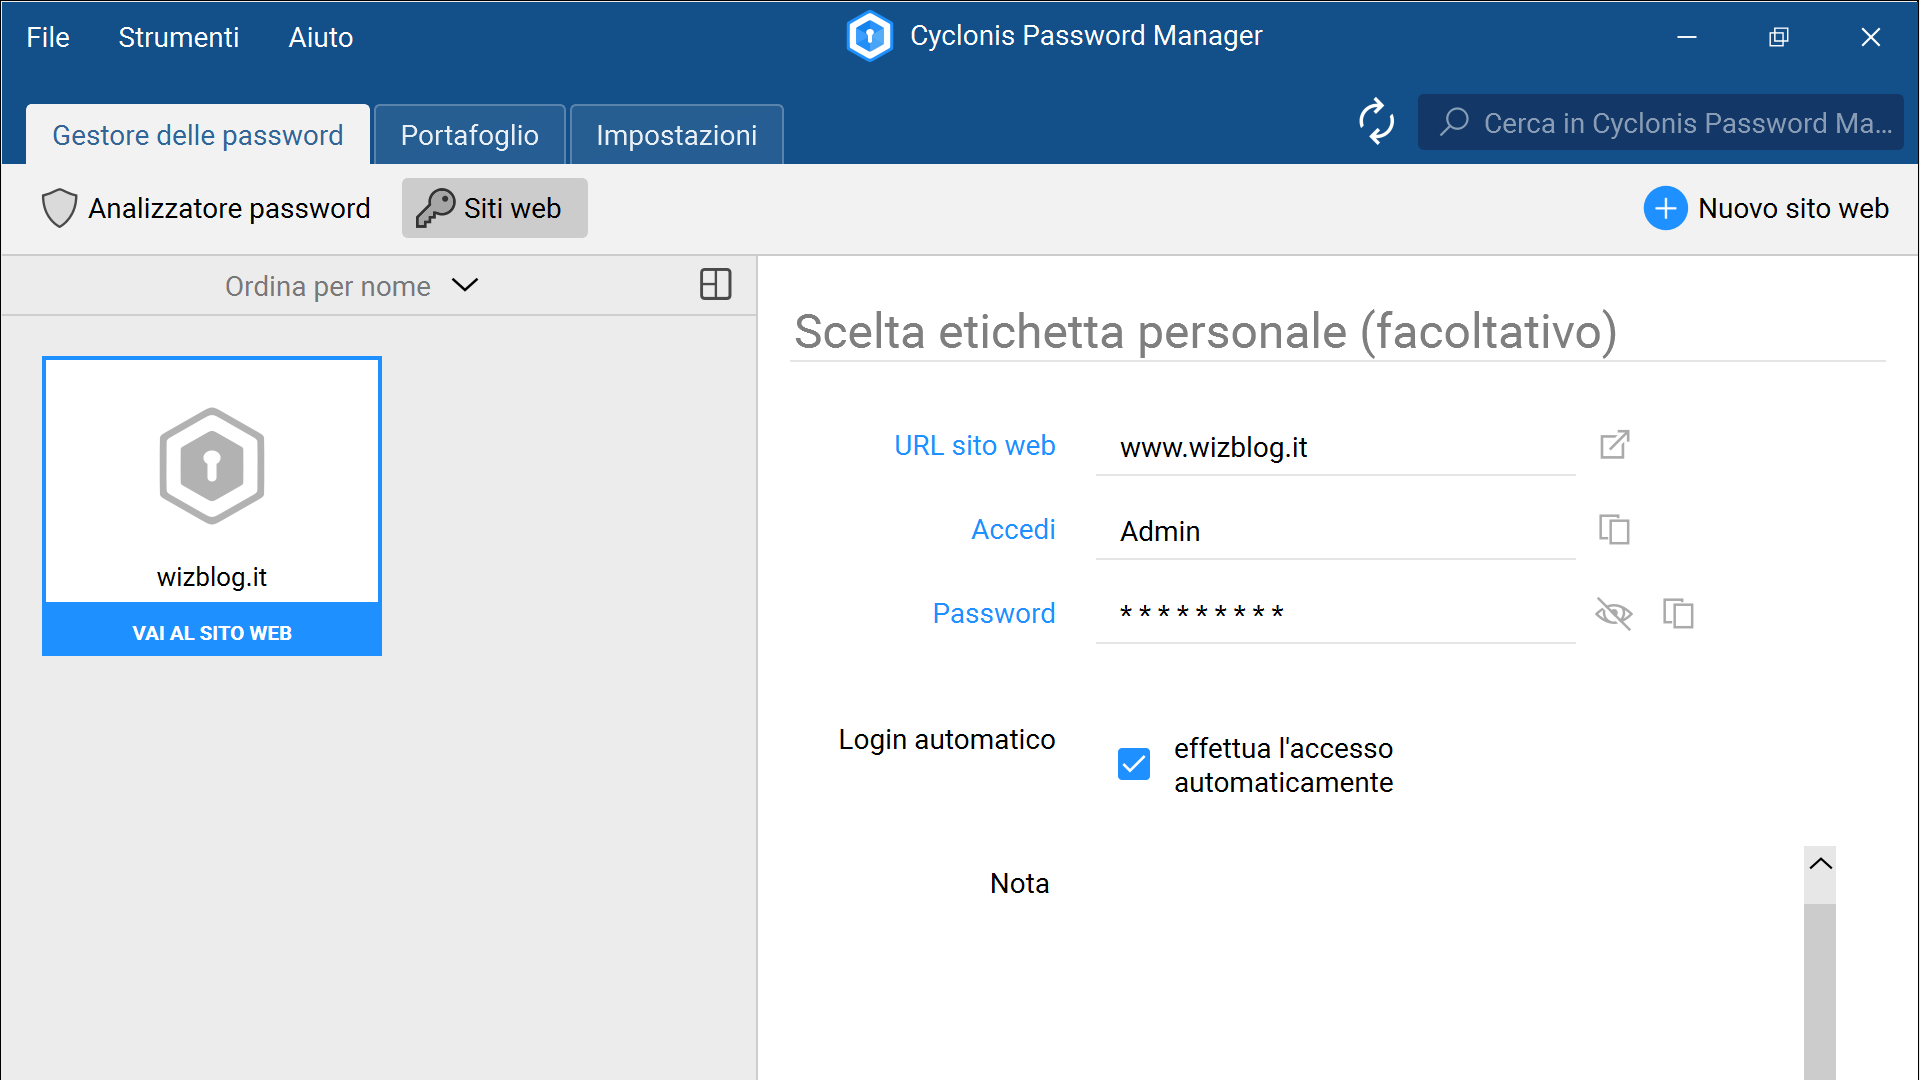 gestione credenziali Cyclonis Password Manager